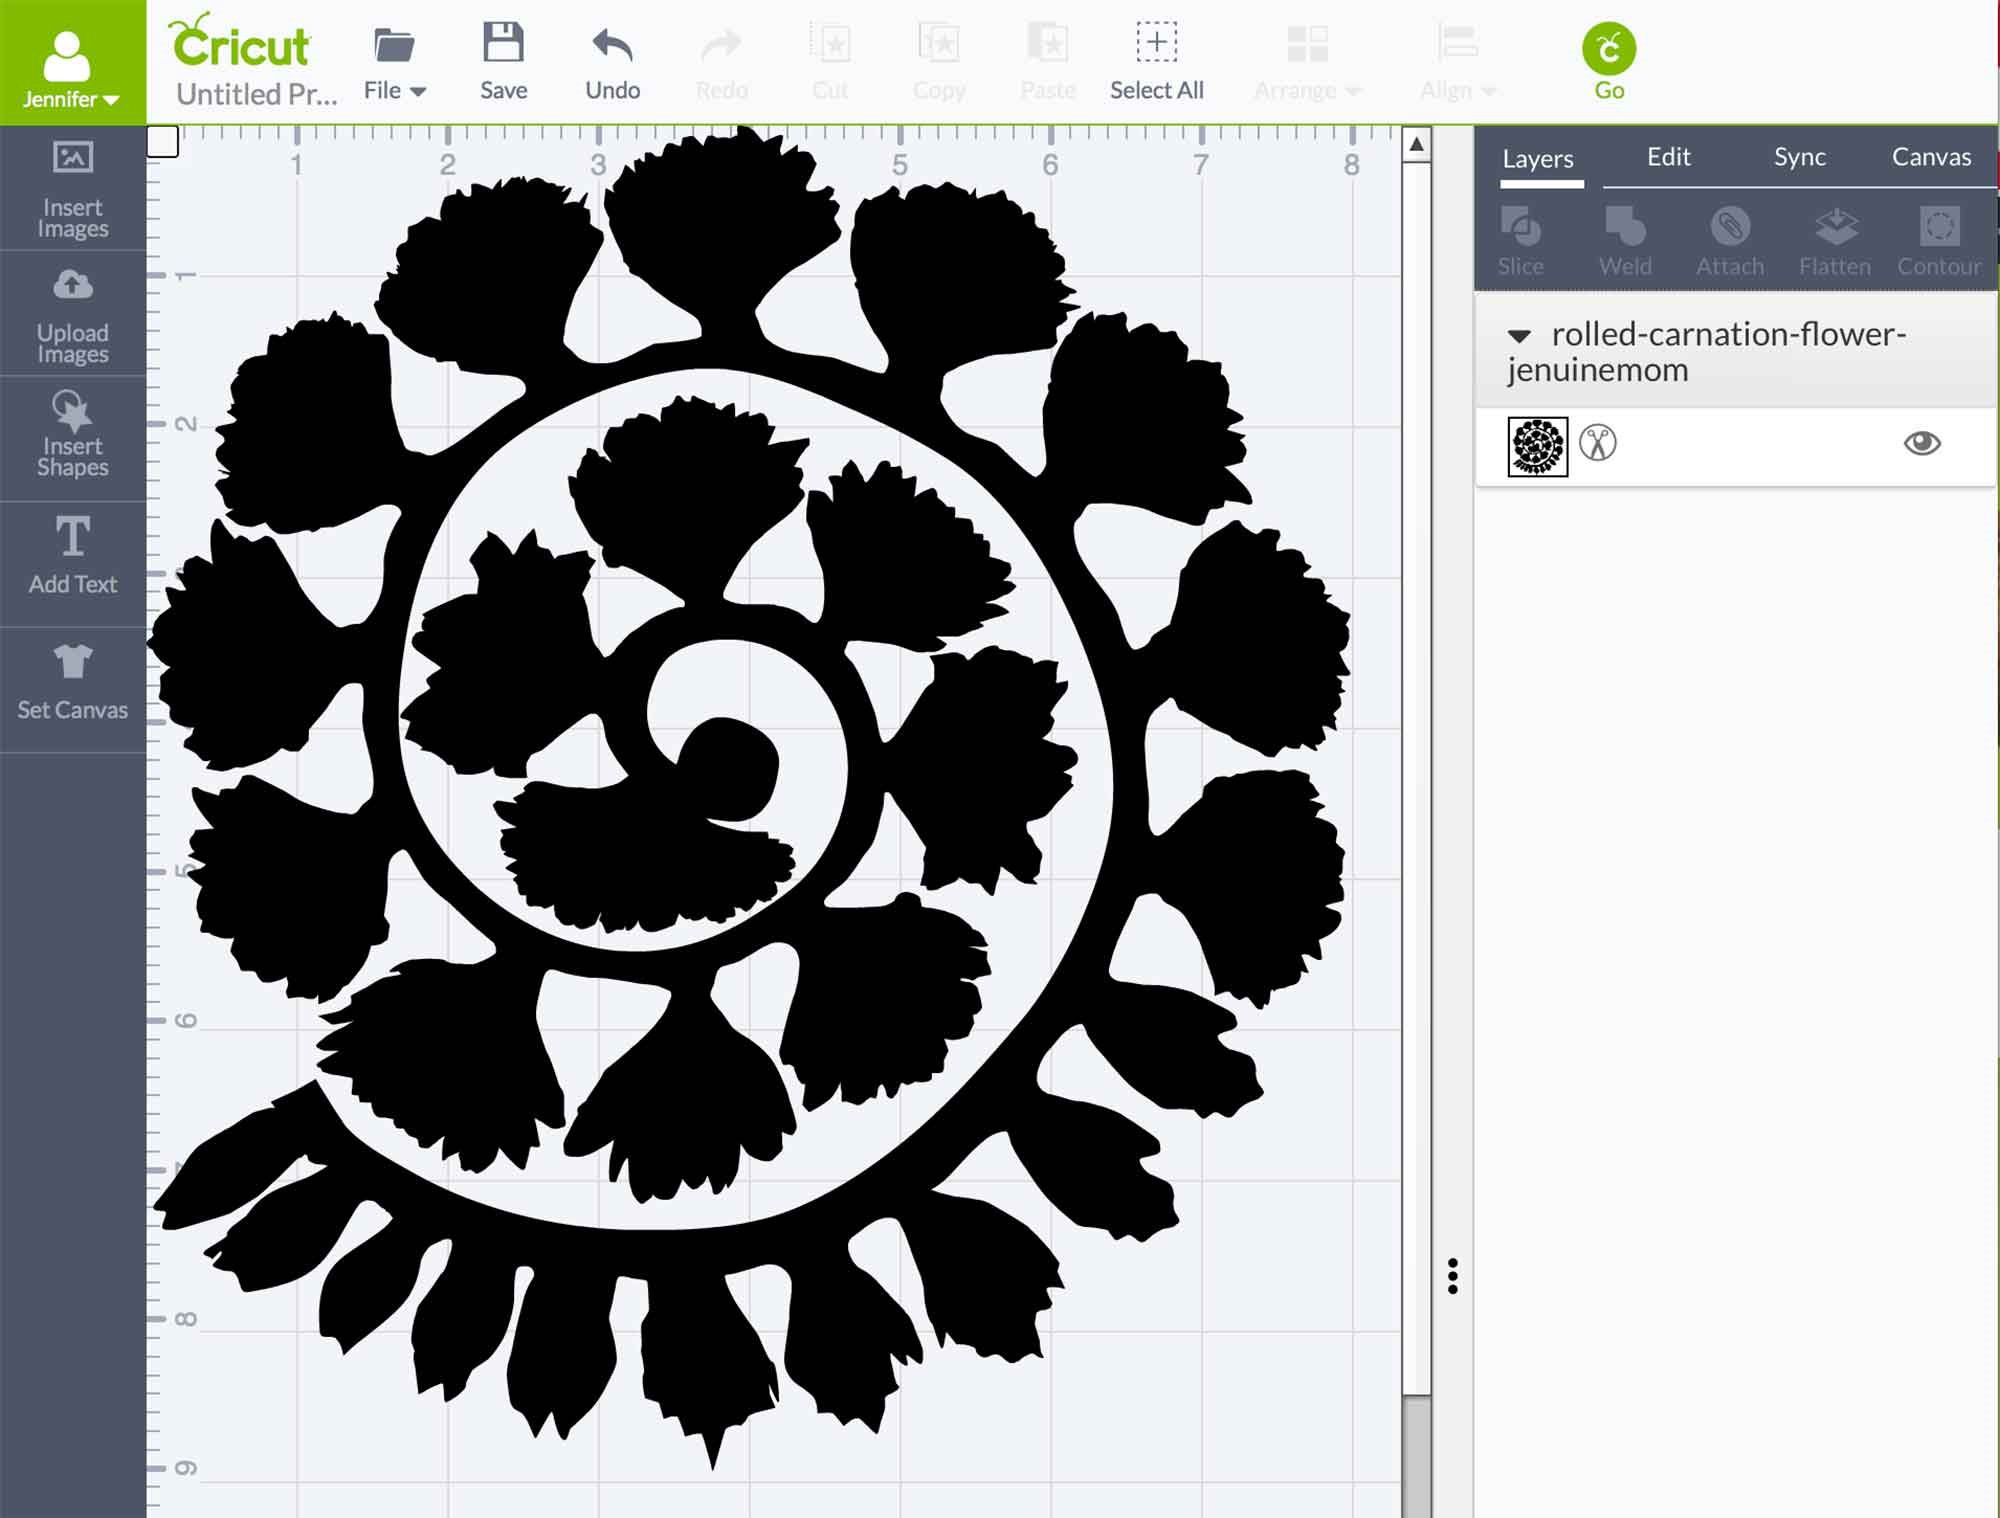 009 Awesome Free Rolled Paper Flower Template For Cricut Inspiration Full